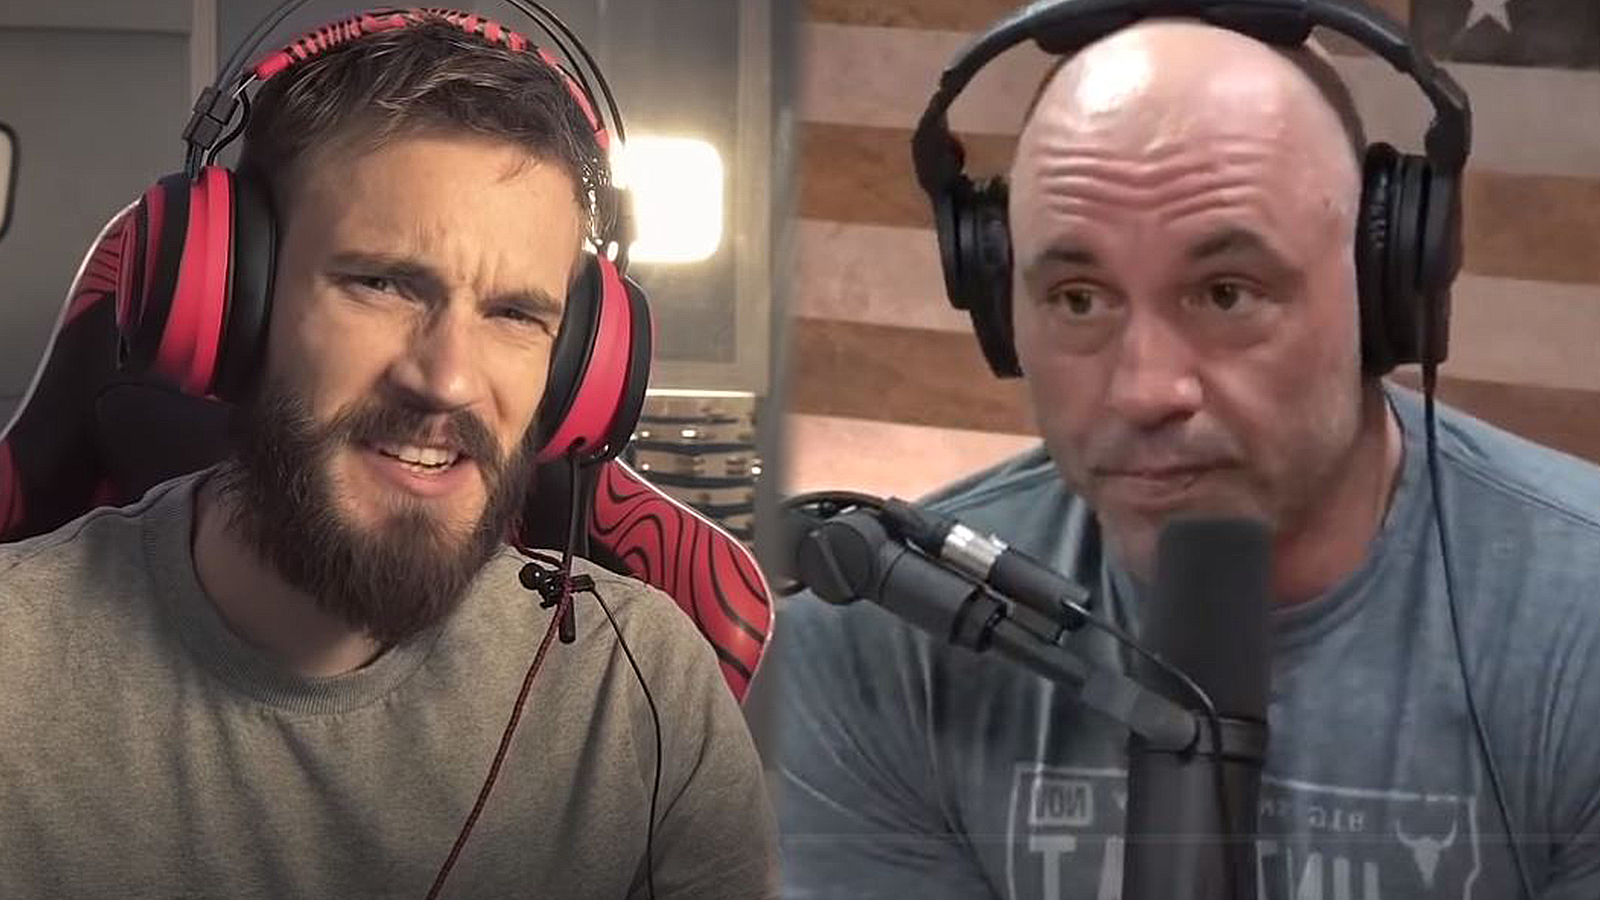 PewDiePie and Joe Rogan look at the camera,